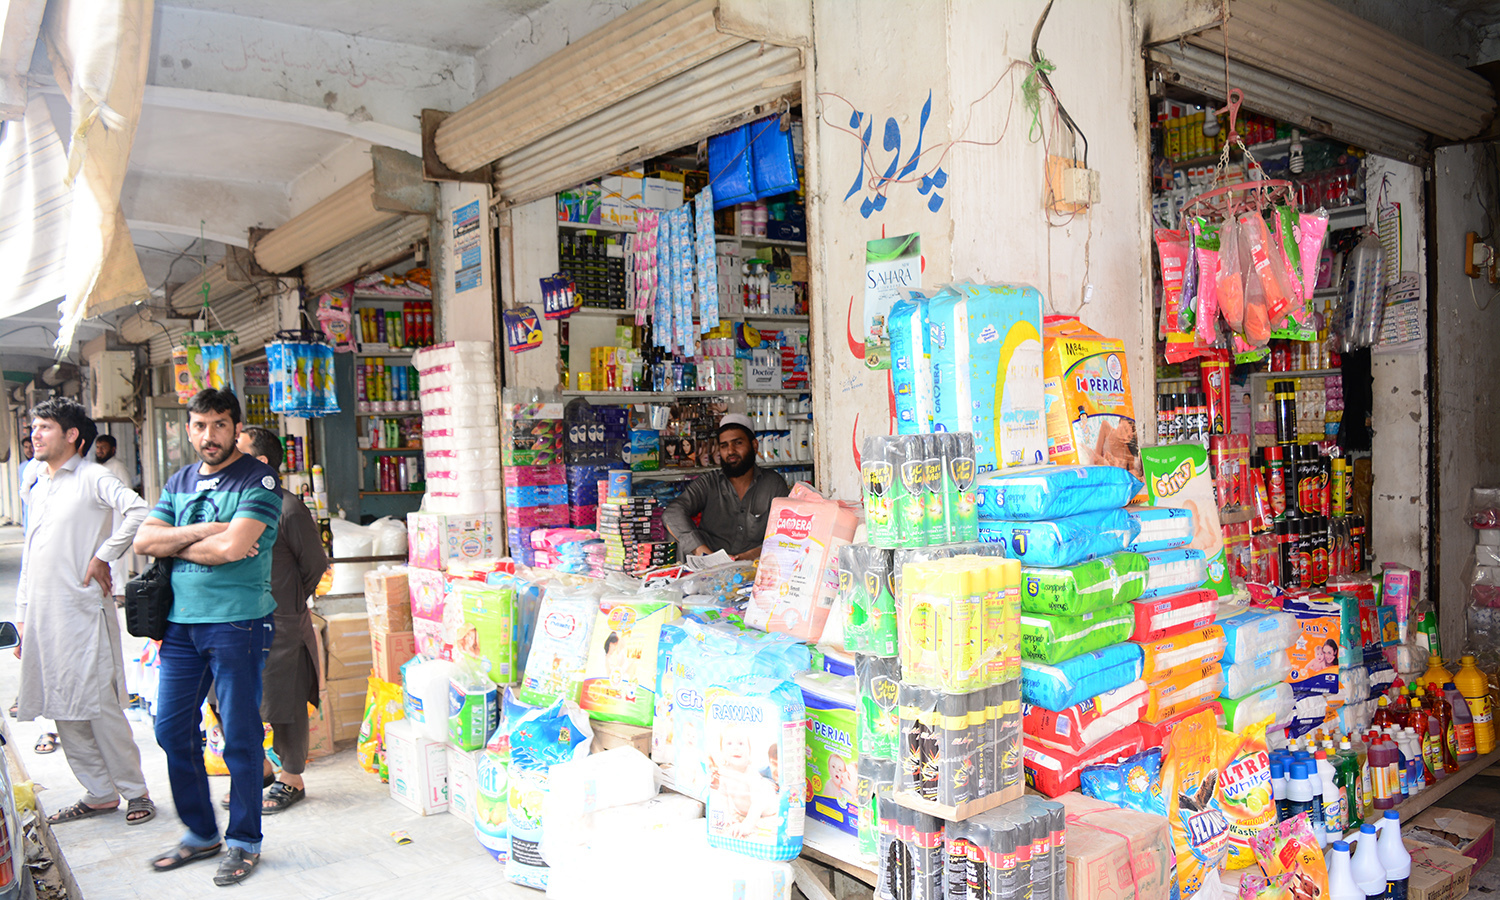 Smuggled goods are sold openly at Karkhano market.